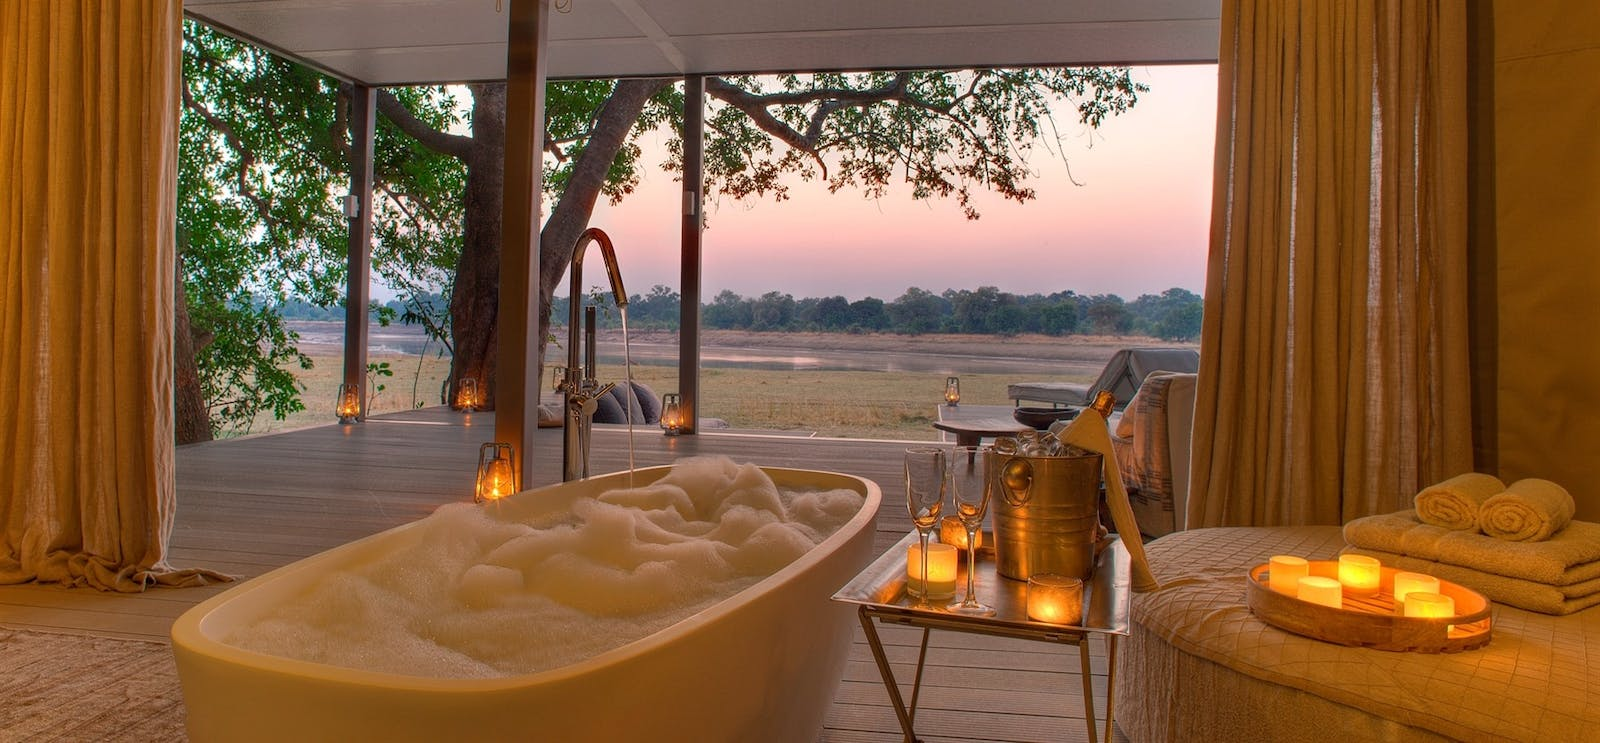 One=bedroom Villa at Time + Tide Chinzombo, South Luangwa Safari, Zambia, Africa